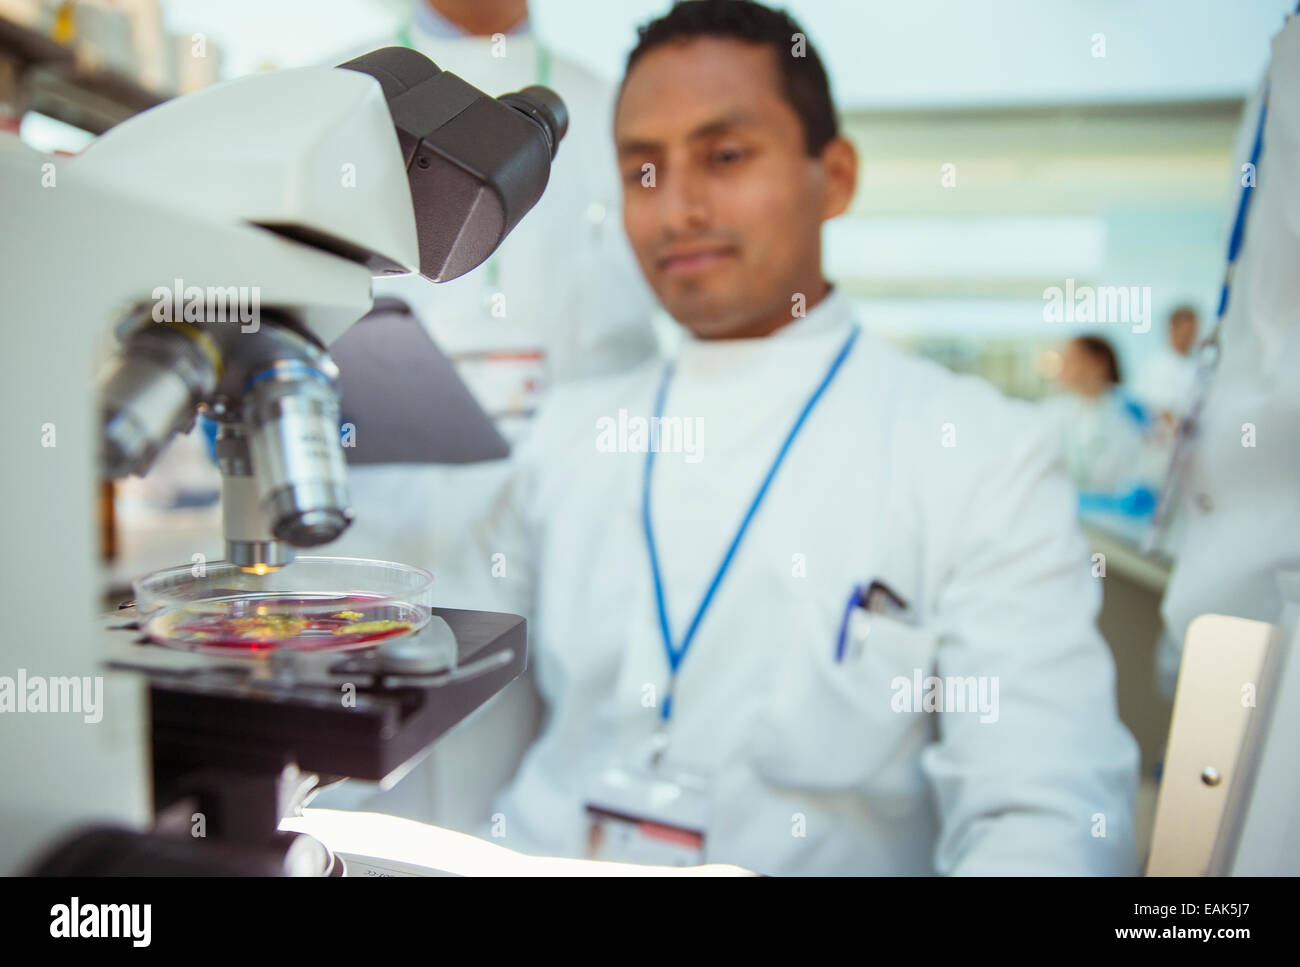 Scientist with sample under microscope in laboratory - Stock Image